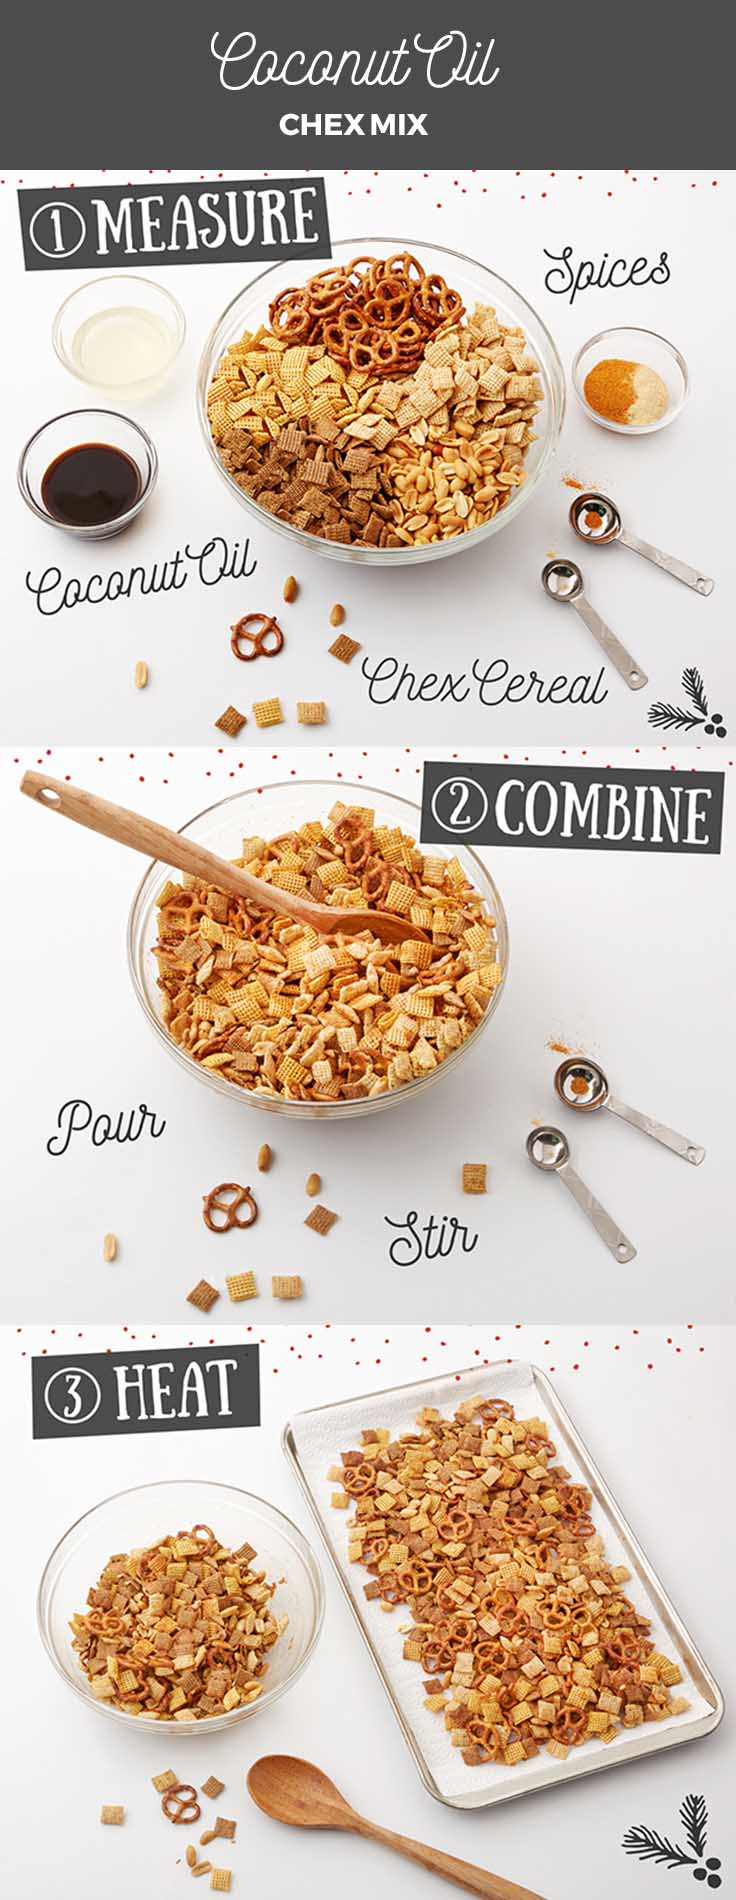 How to Make Coconut Oil Chex Mix!